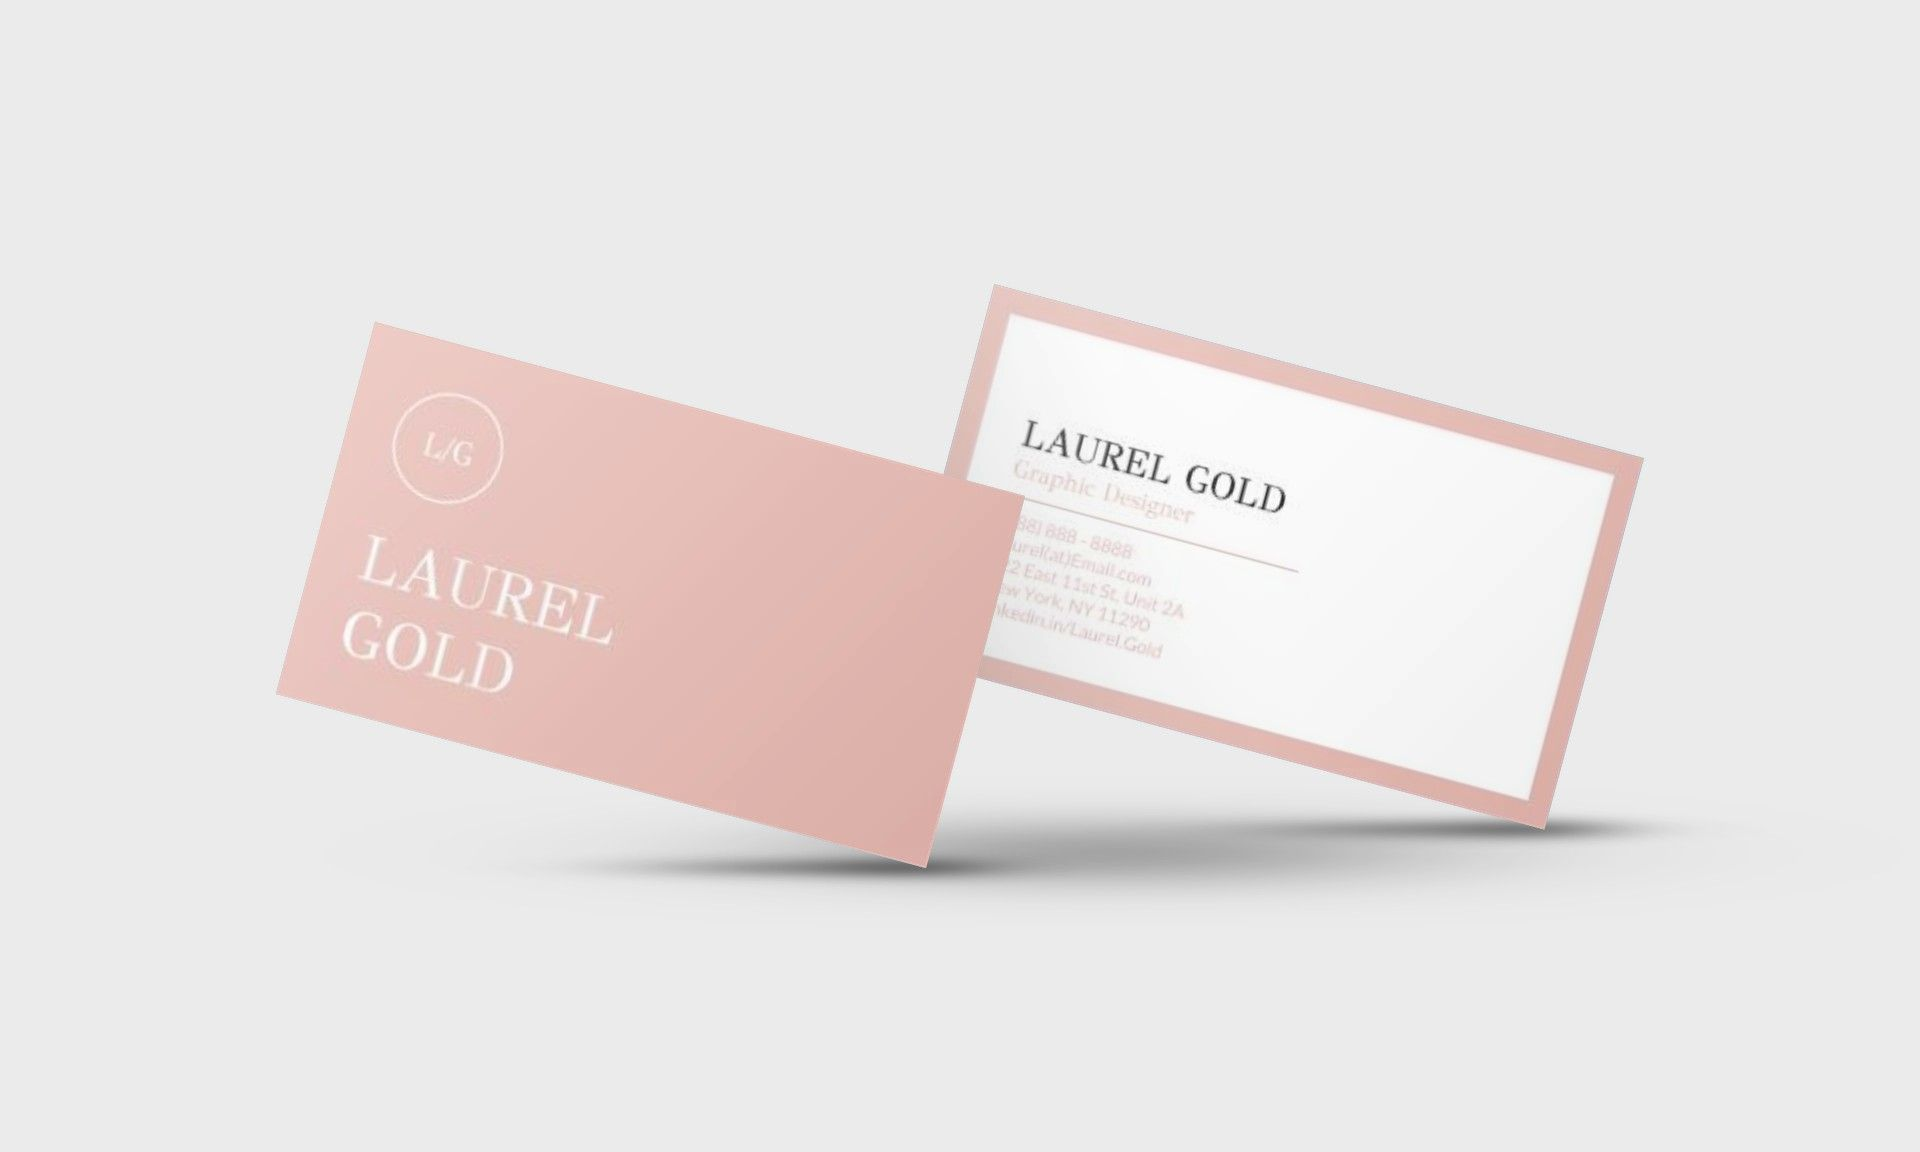 Laurel Gold Google Docs Business Card Template Stand Out Shop Throughout Google Docs Google Business Card Free Business Card Templates Business Card Template